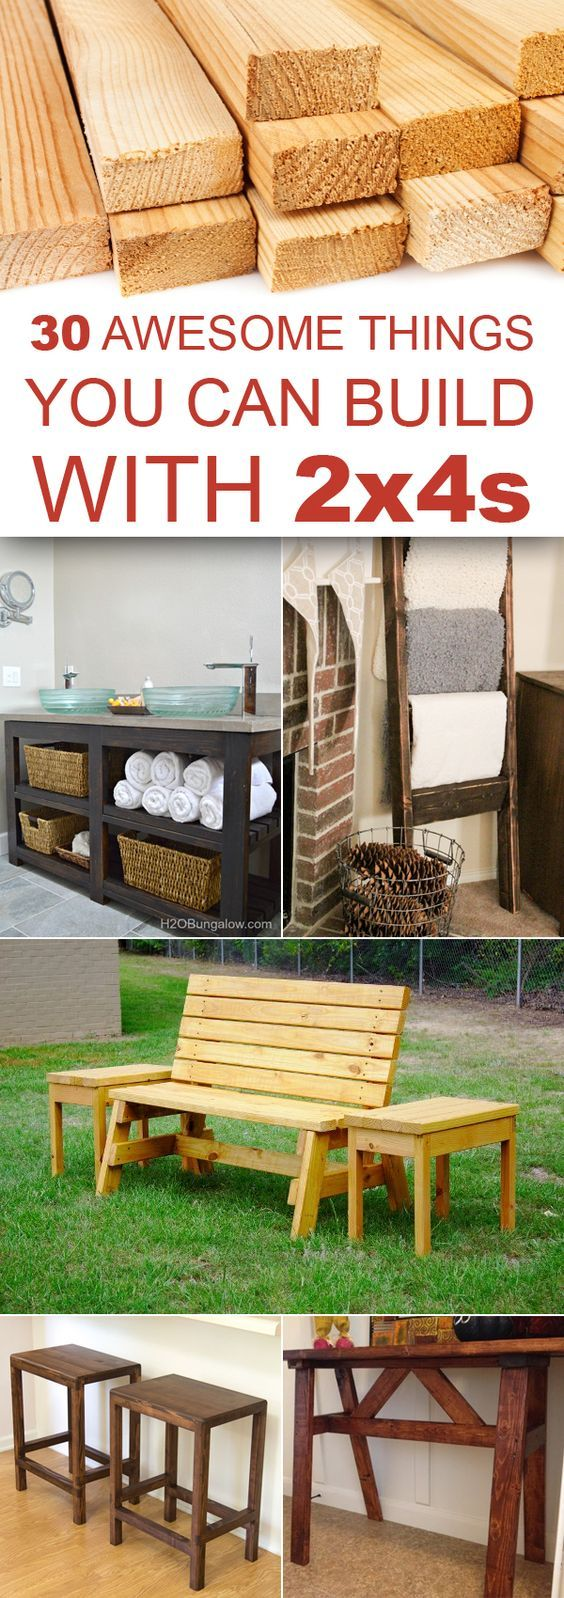 25+ unique Outdoor wood projects ideas on Pinterest | Outdoor ...